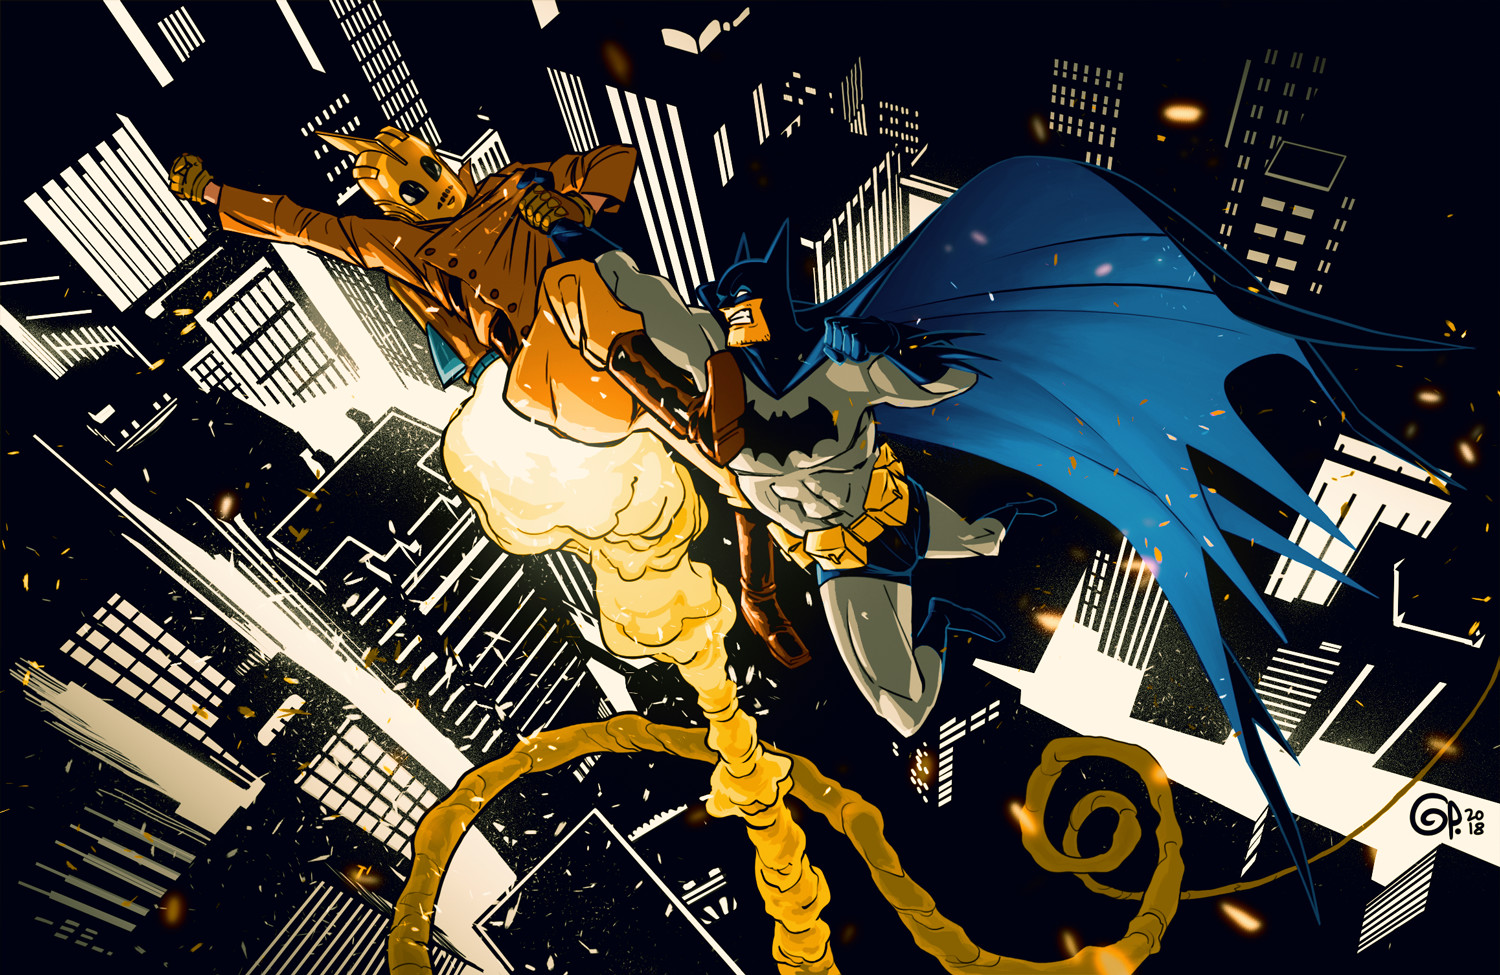 The Rocketeer vs The Batman